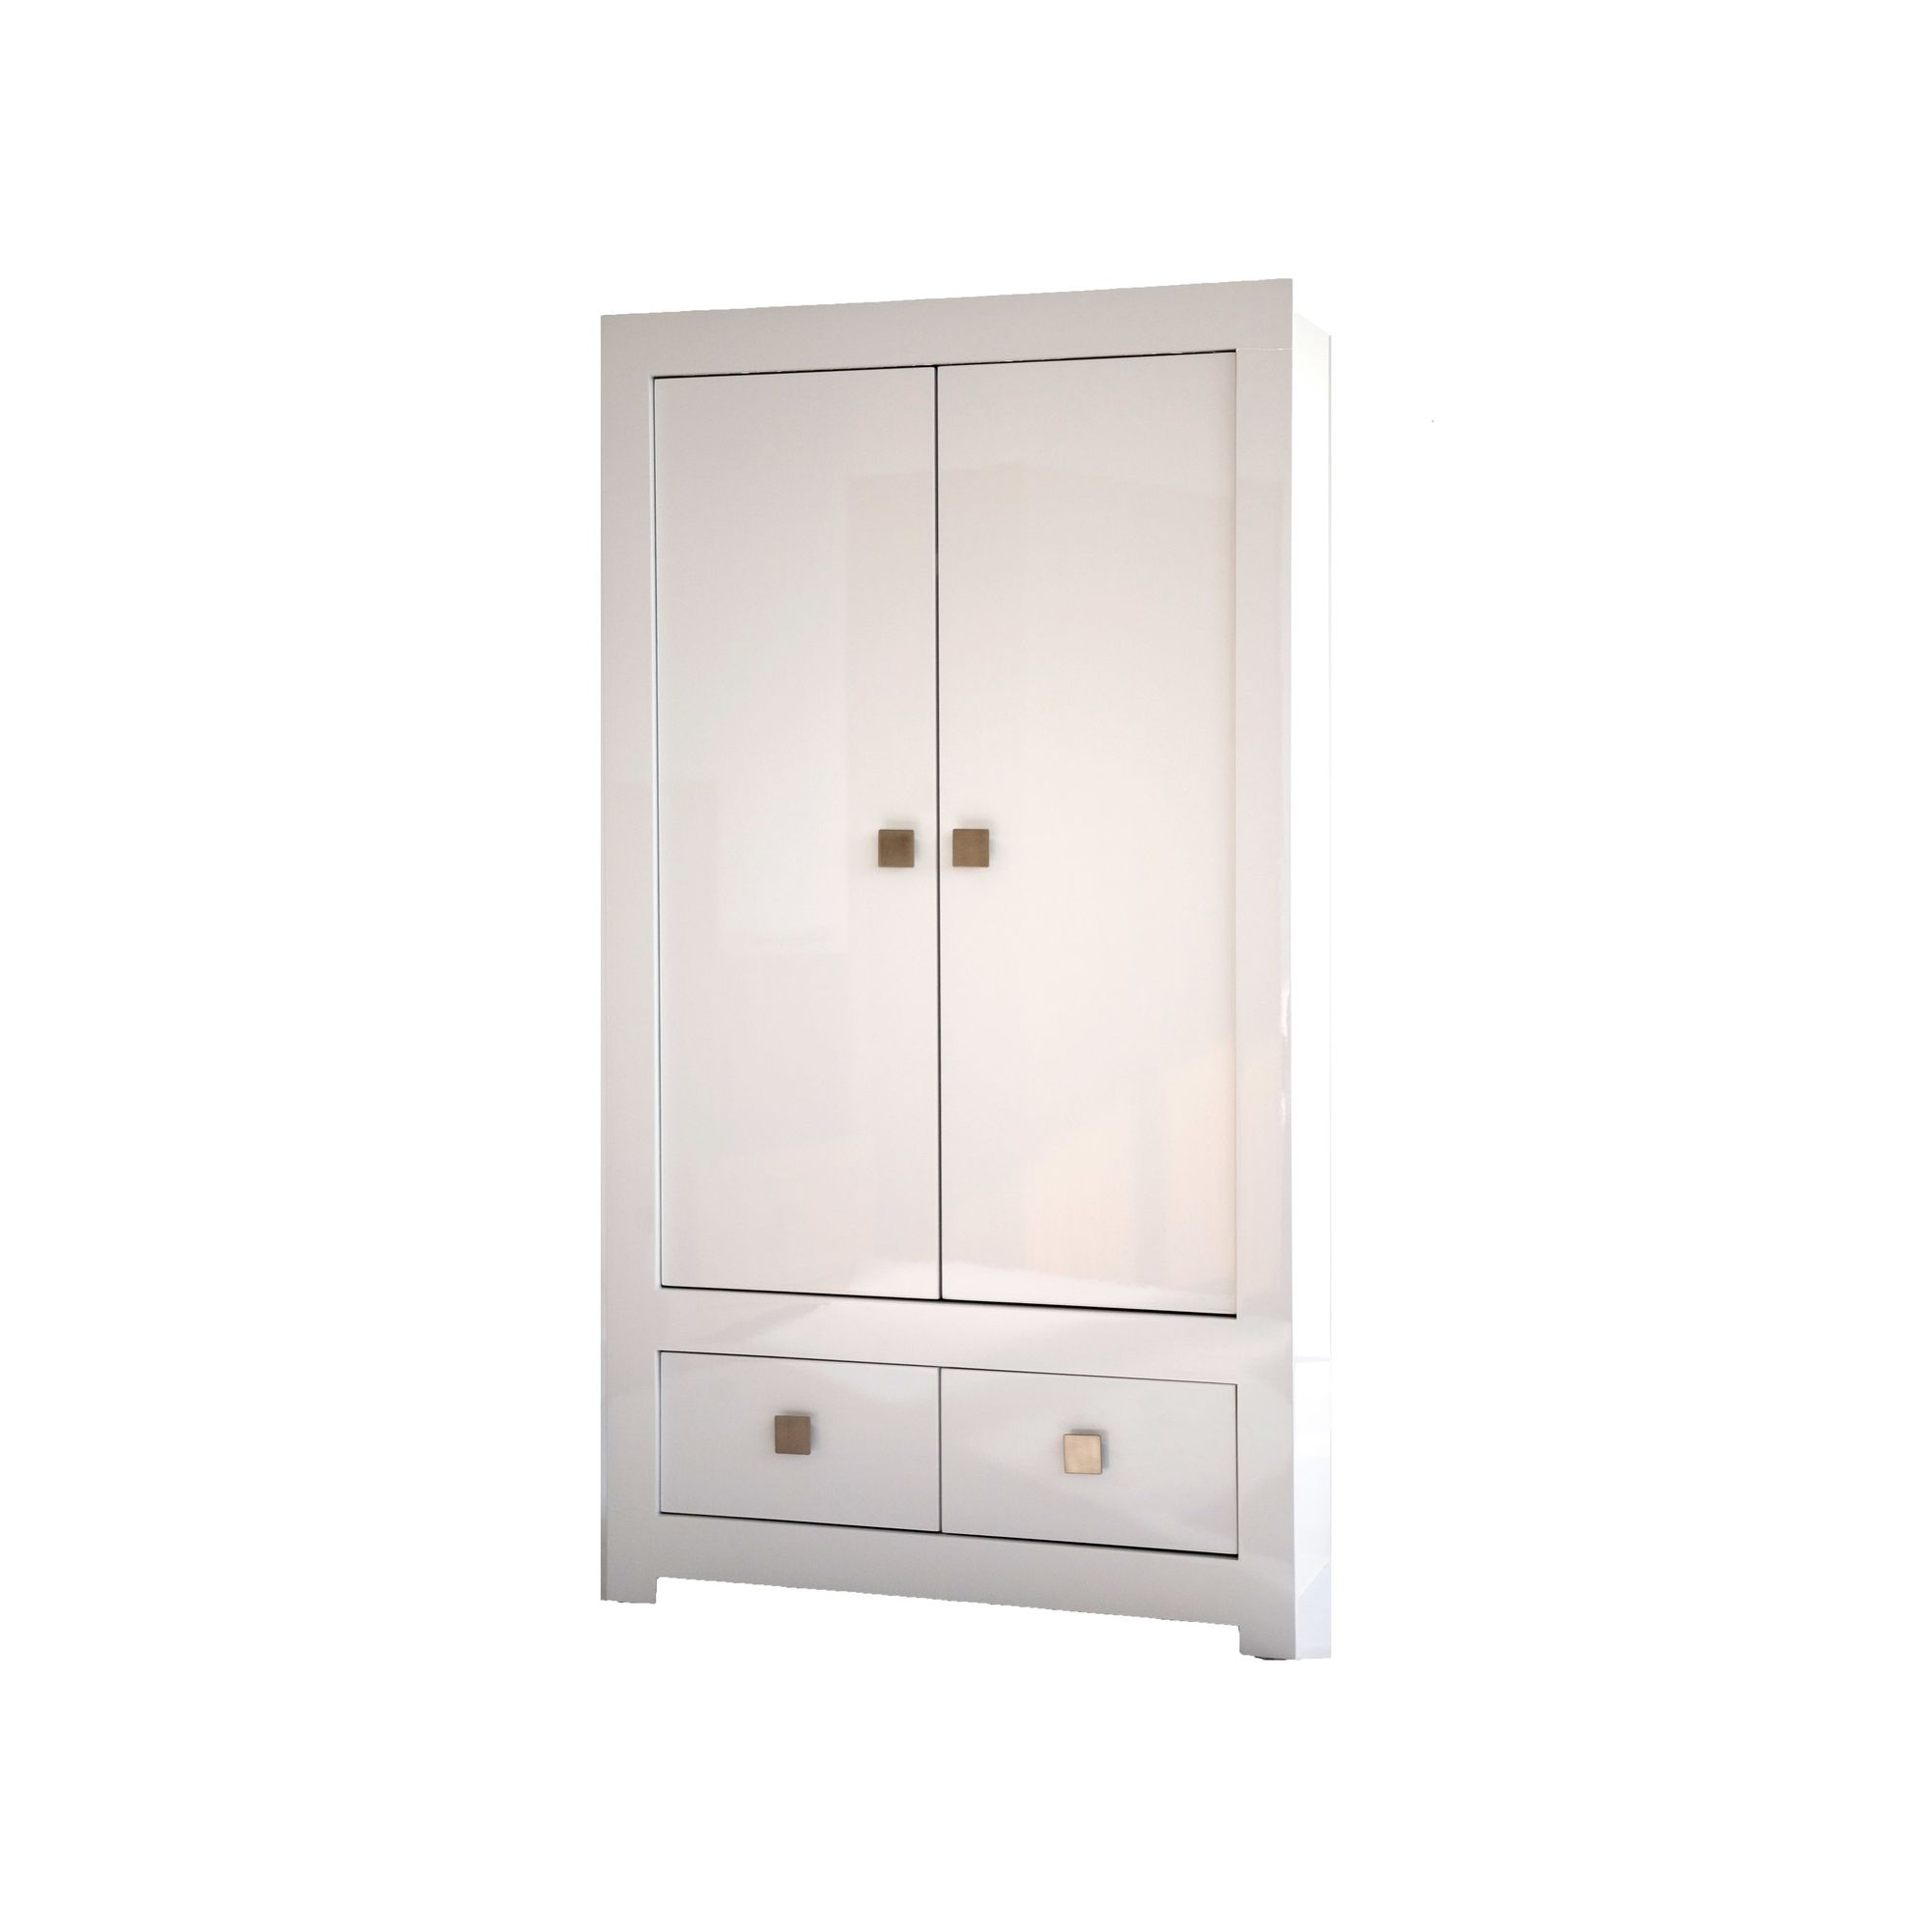 World Furniture Bari Two Drawer Wardrobe in High White Gloss at Tesco Direct